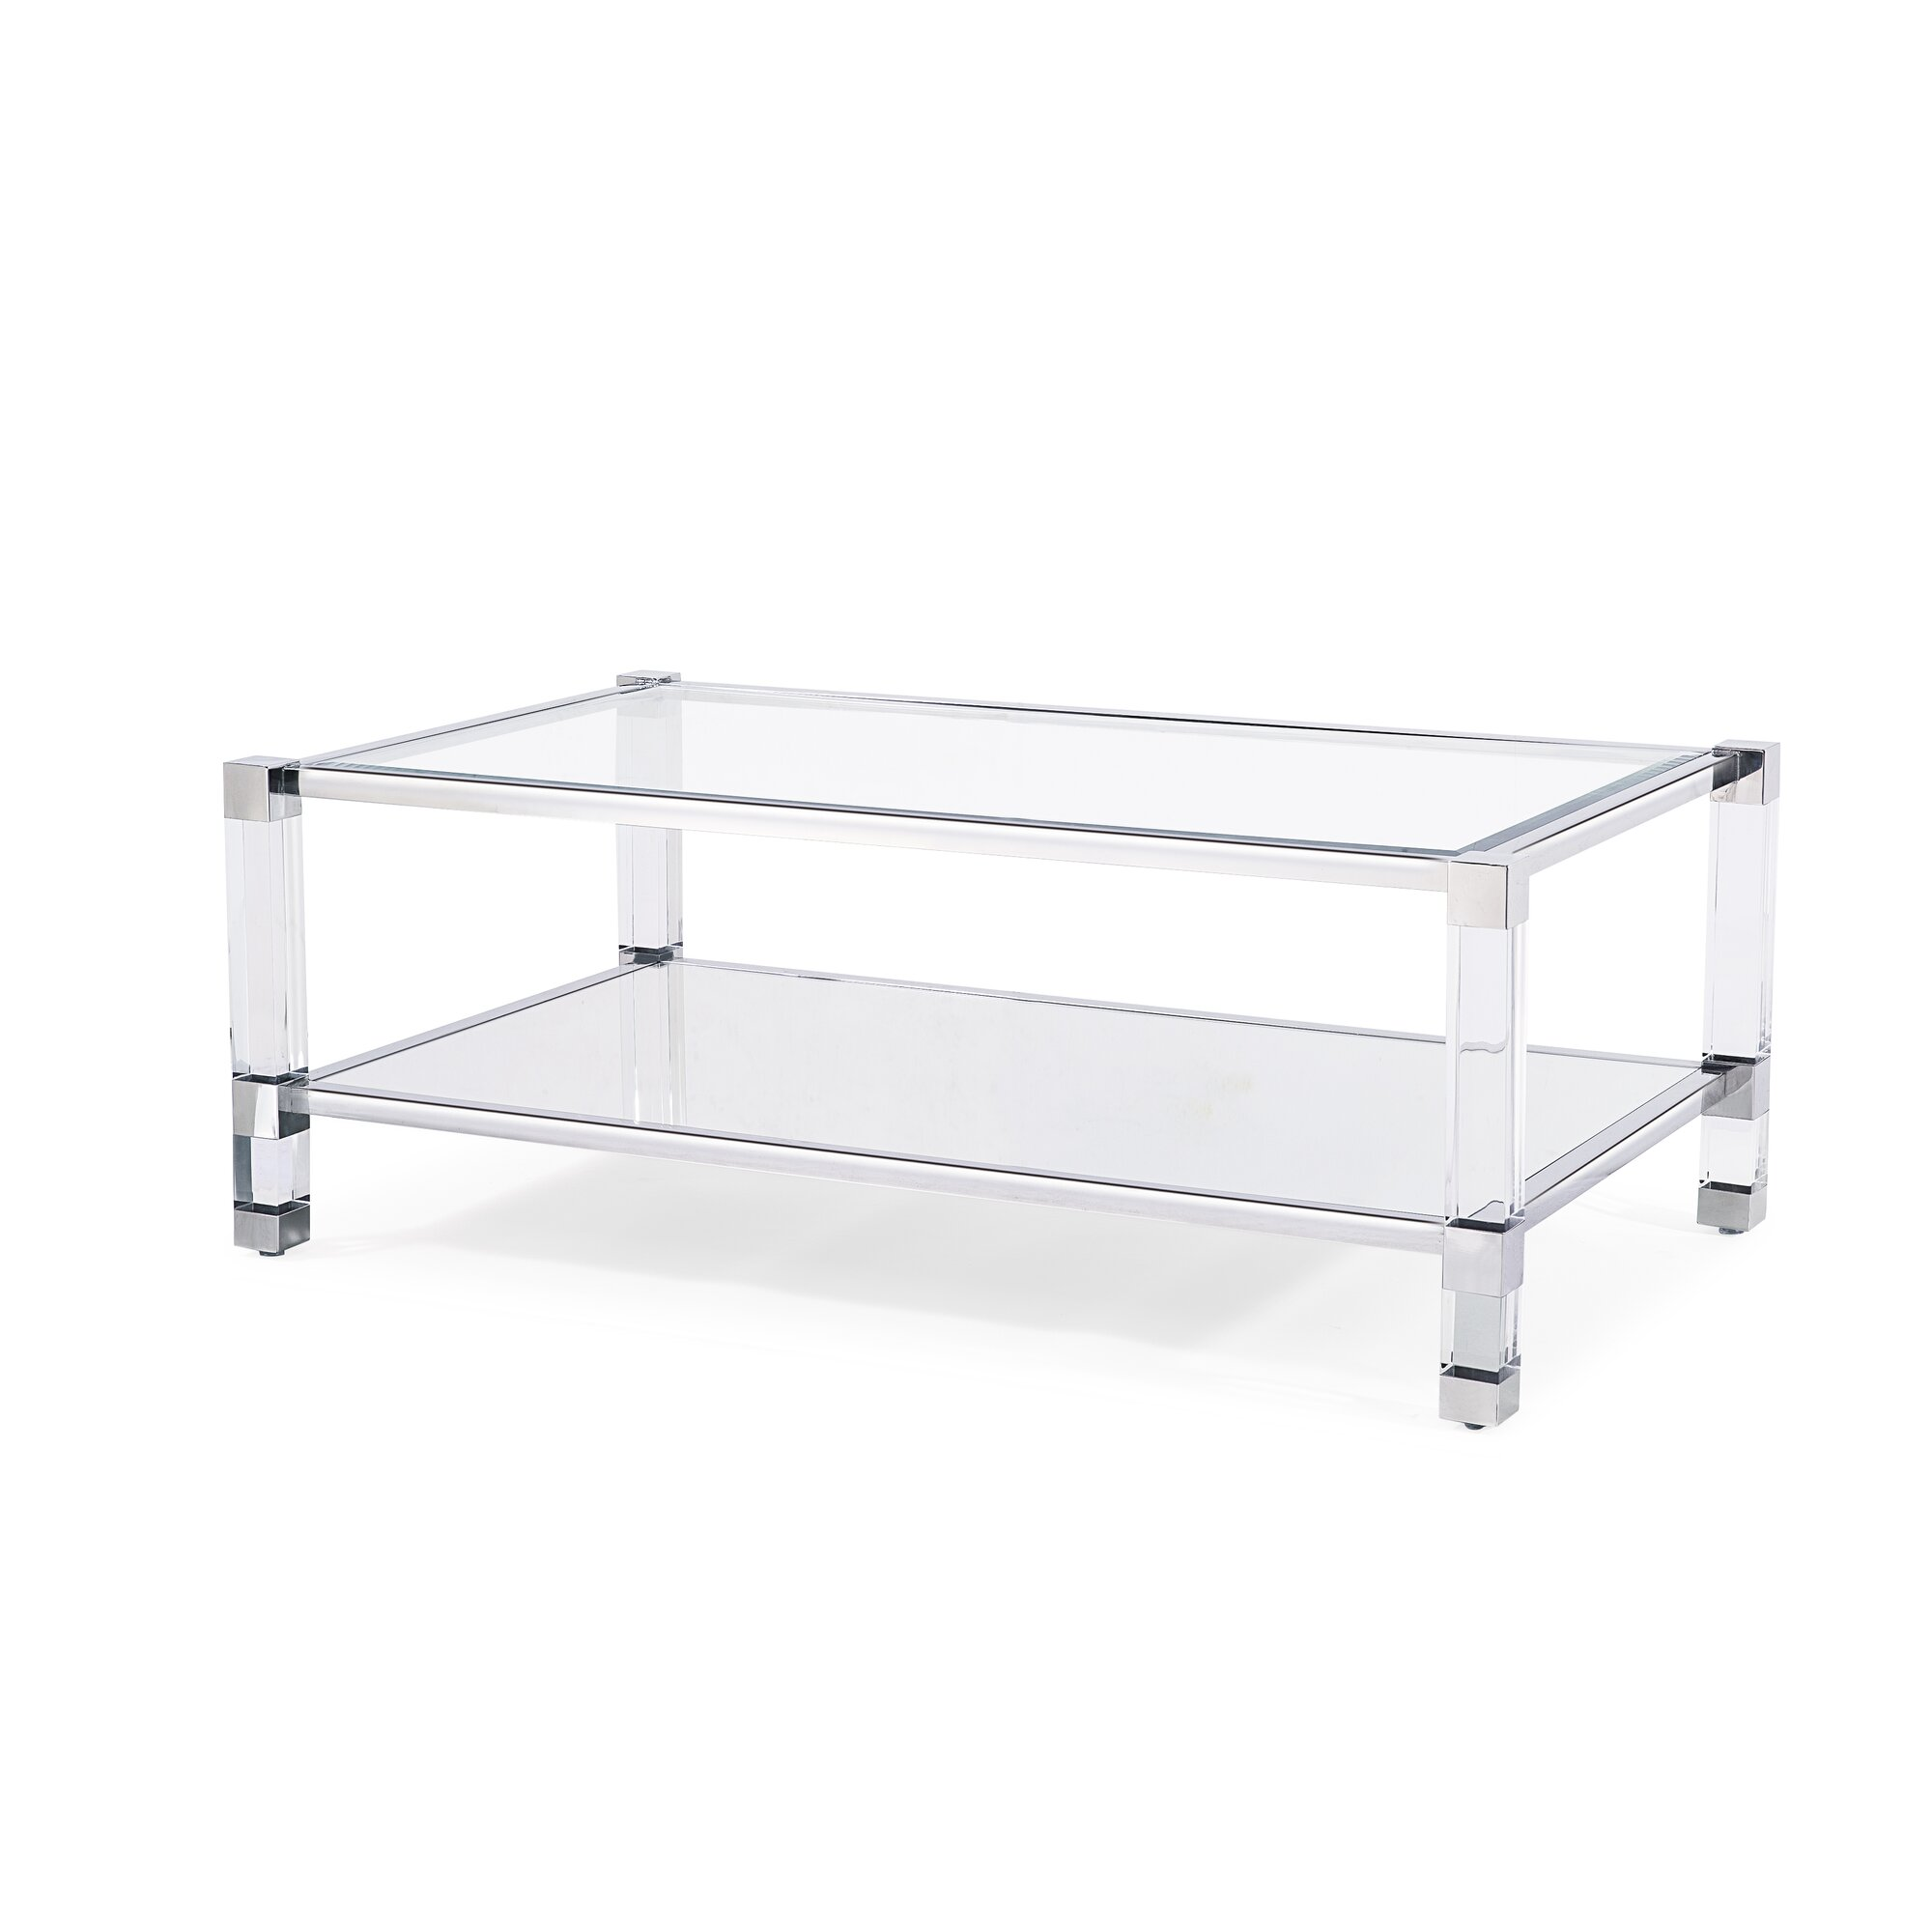 Polycarbonate Coffee Table Instacoffeetable